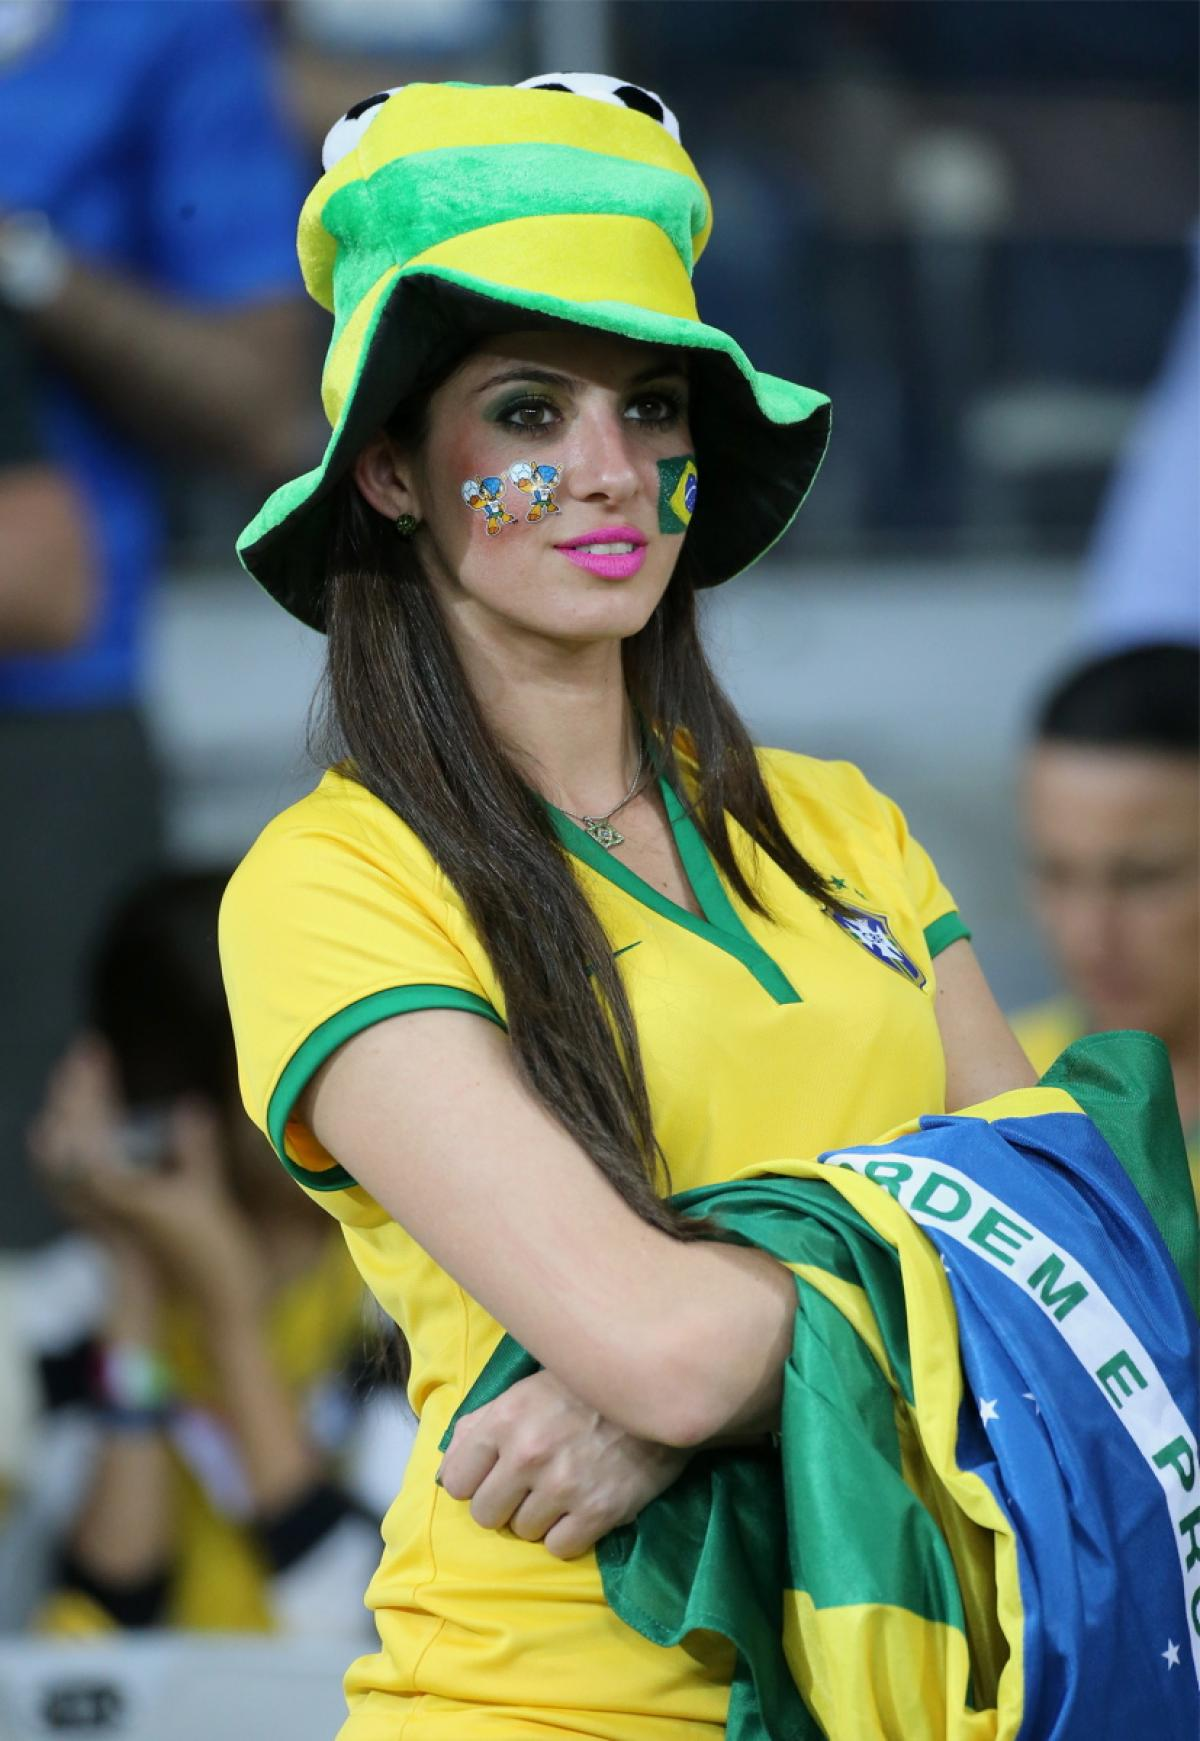 4 hot brazil fan 5 - hottest female fans 2014 world cup